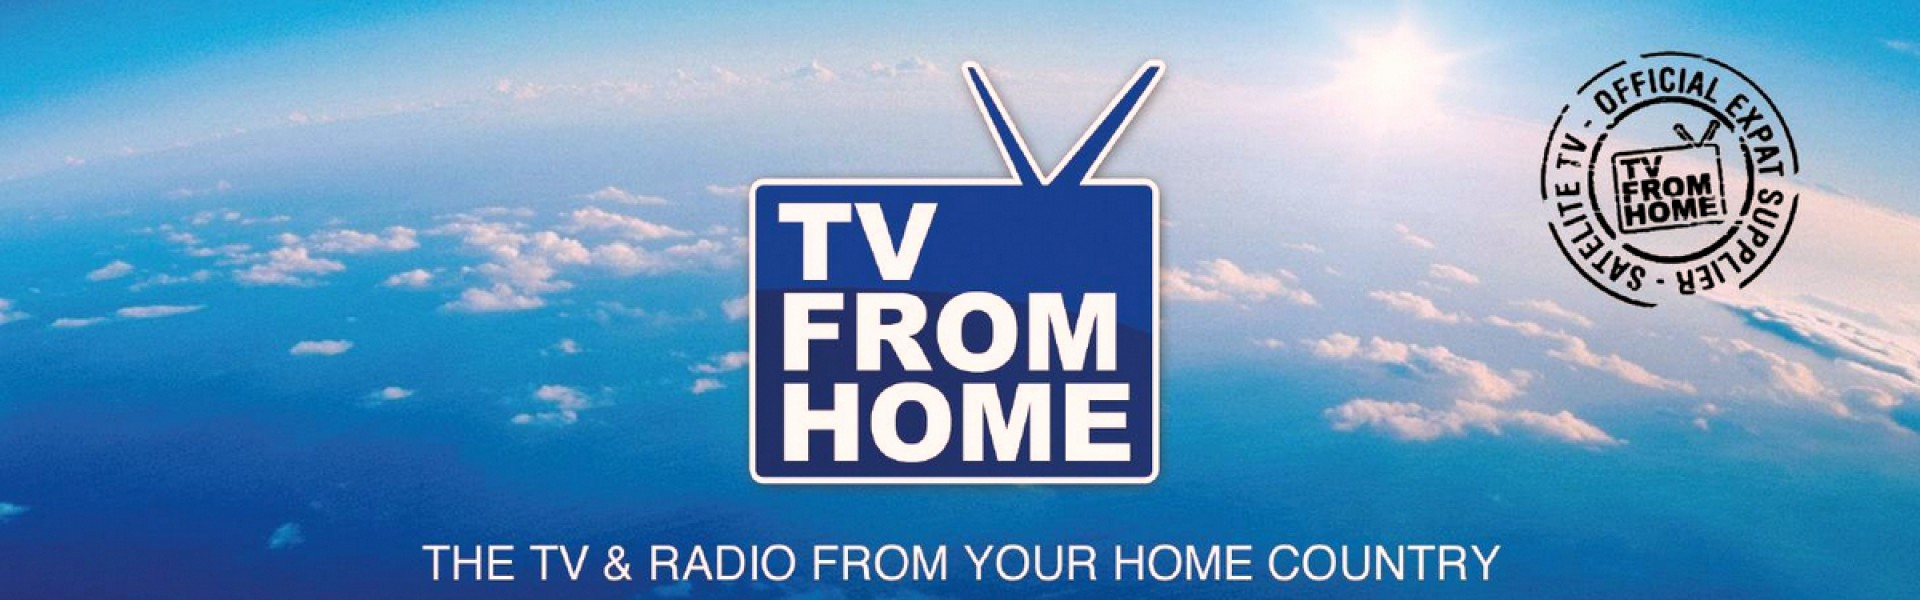 cropped-cropped-TVFROMHOME-BANNER-Lead01-1.jpg